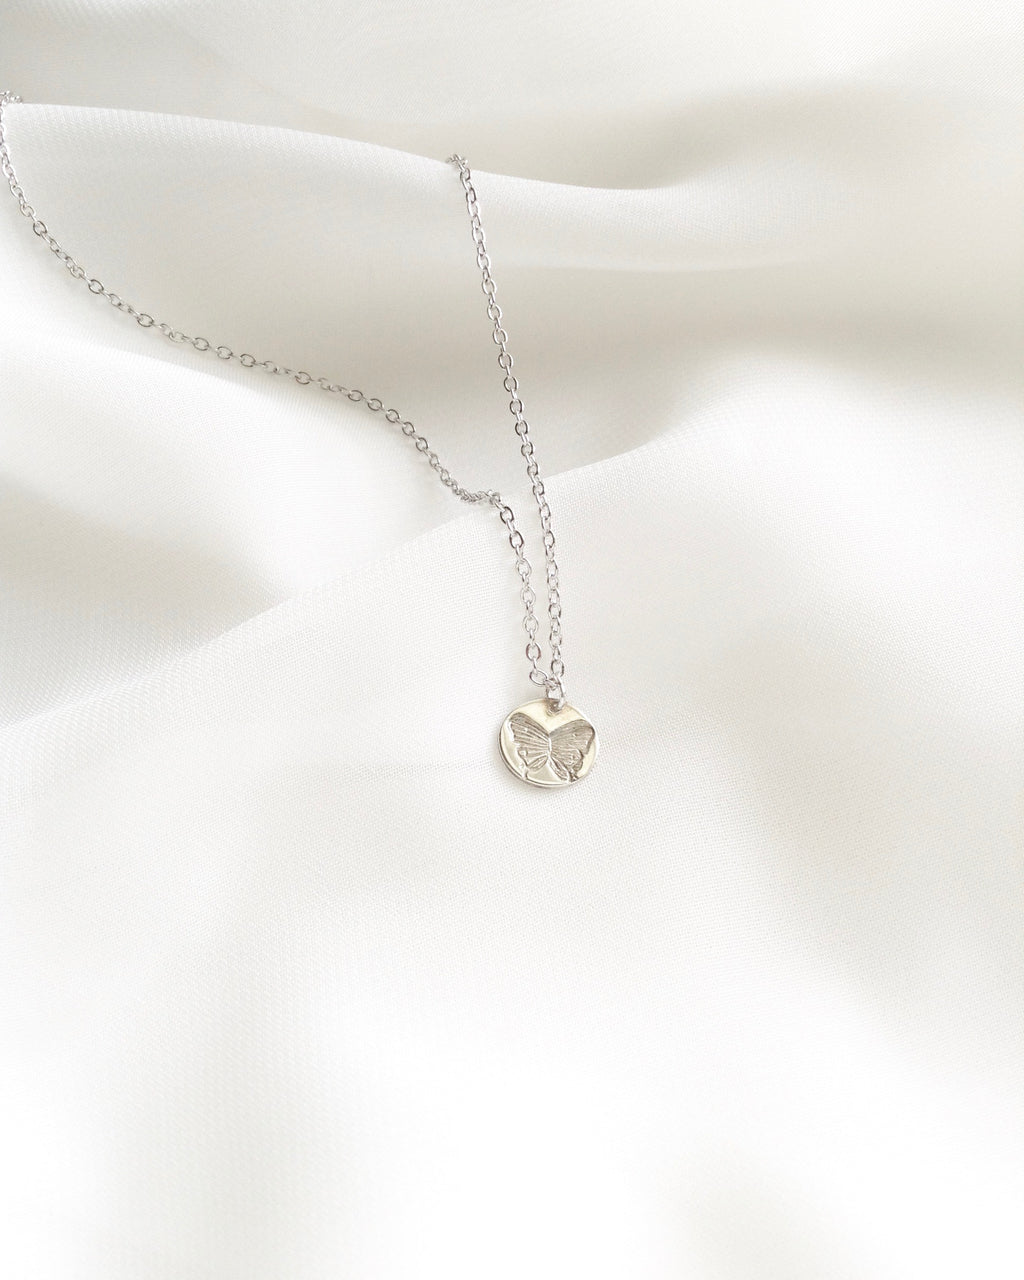 Butterfly Necklace | Small Dainty Necklace | IB Jewelry